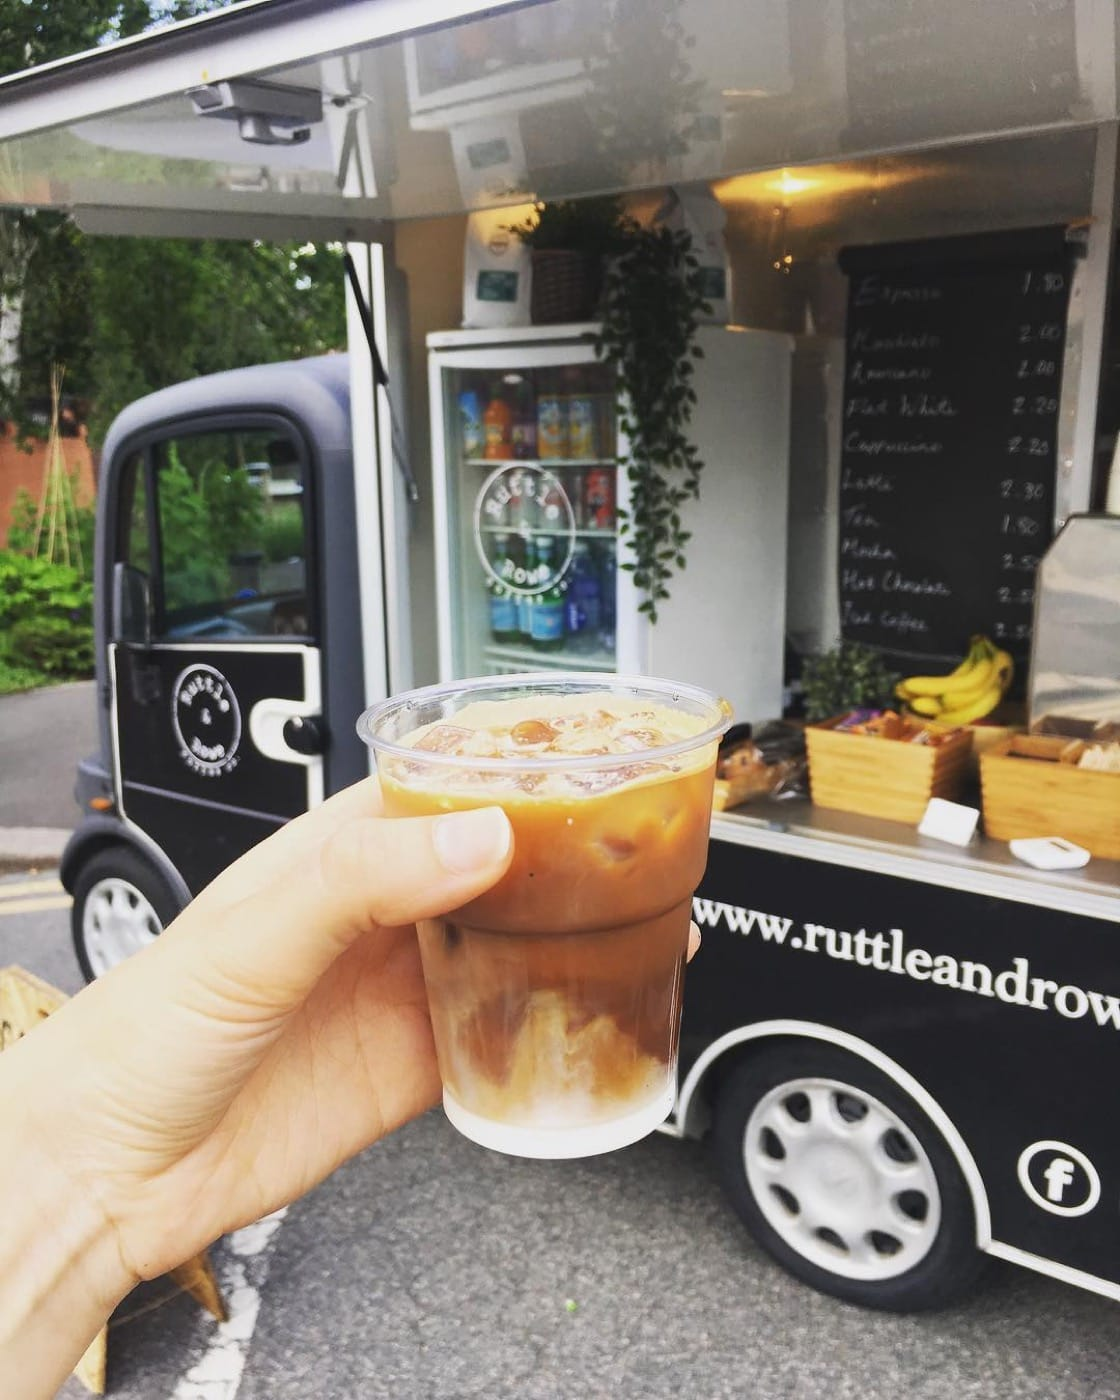 Feast-It-Ruttle-and-Rowe-Mobile-Coffee-Van-Street-Food-Espresso-Martinis-Speciality-Coffee-Event-Catering-Wedding-Catering-Book-Now-one